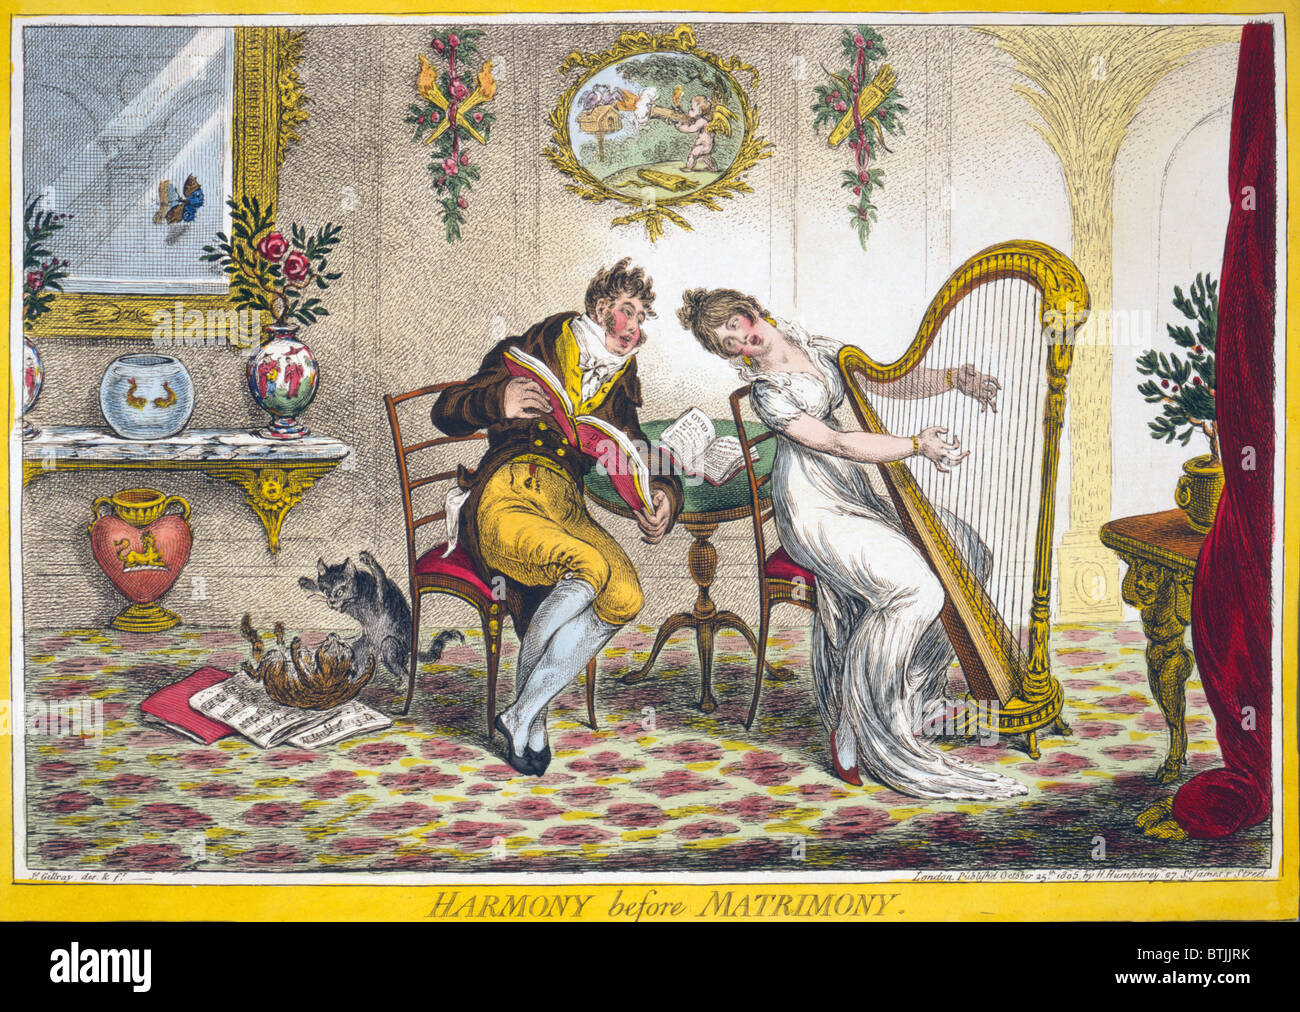 Harmony before Matrimony. A young woman and a fashionably dressed young man singing a duet. The woman plays a harp - Stock Image